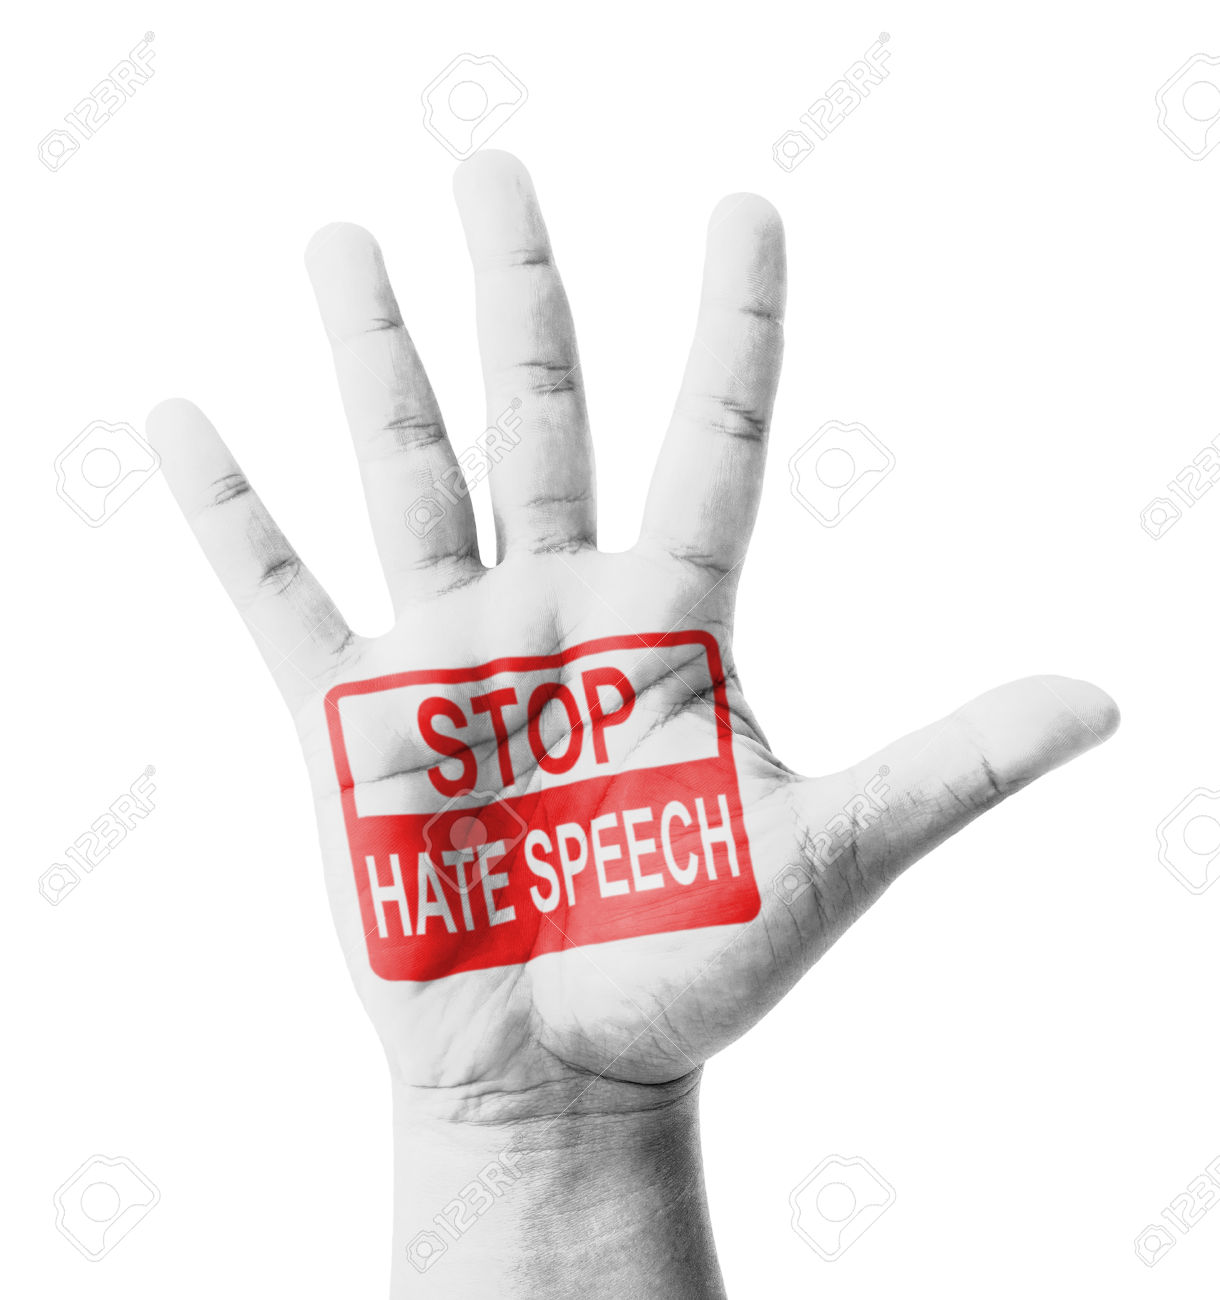 Alexander Graham Bell S Name Hate Speech With Spin Wheel